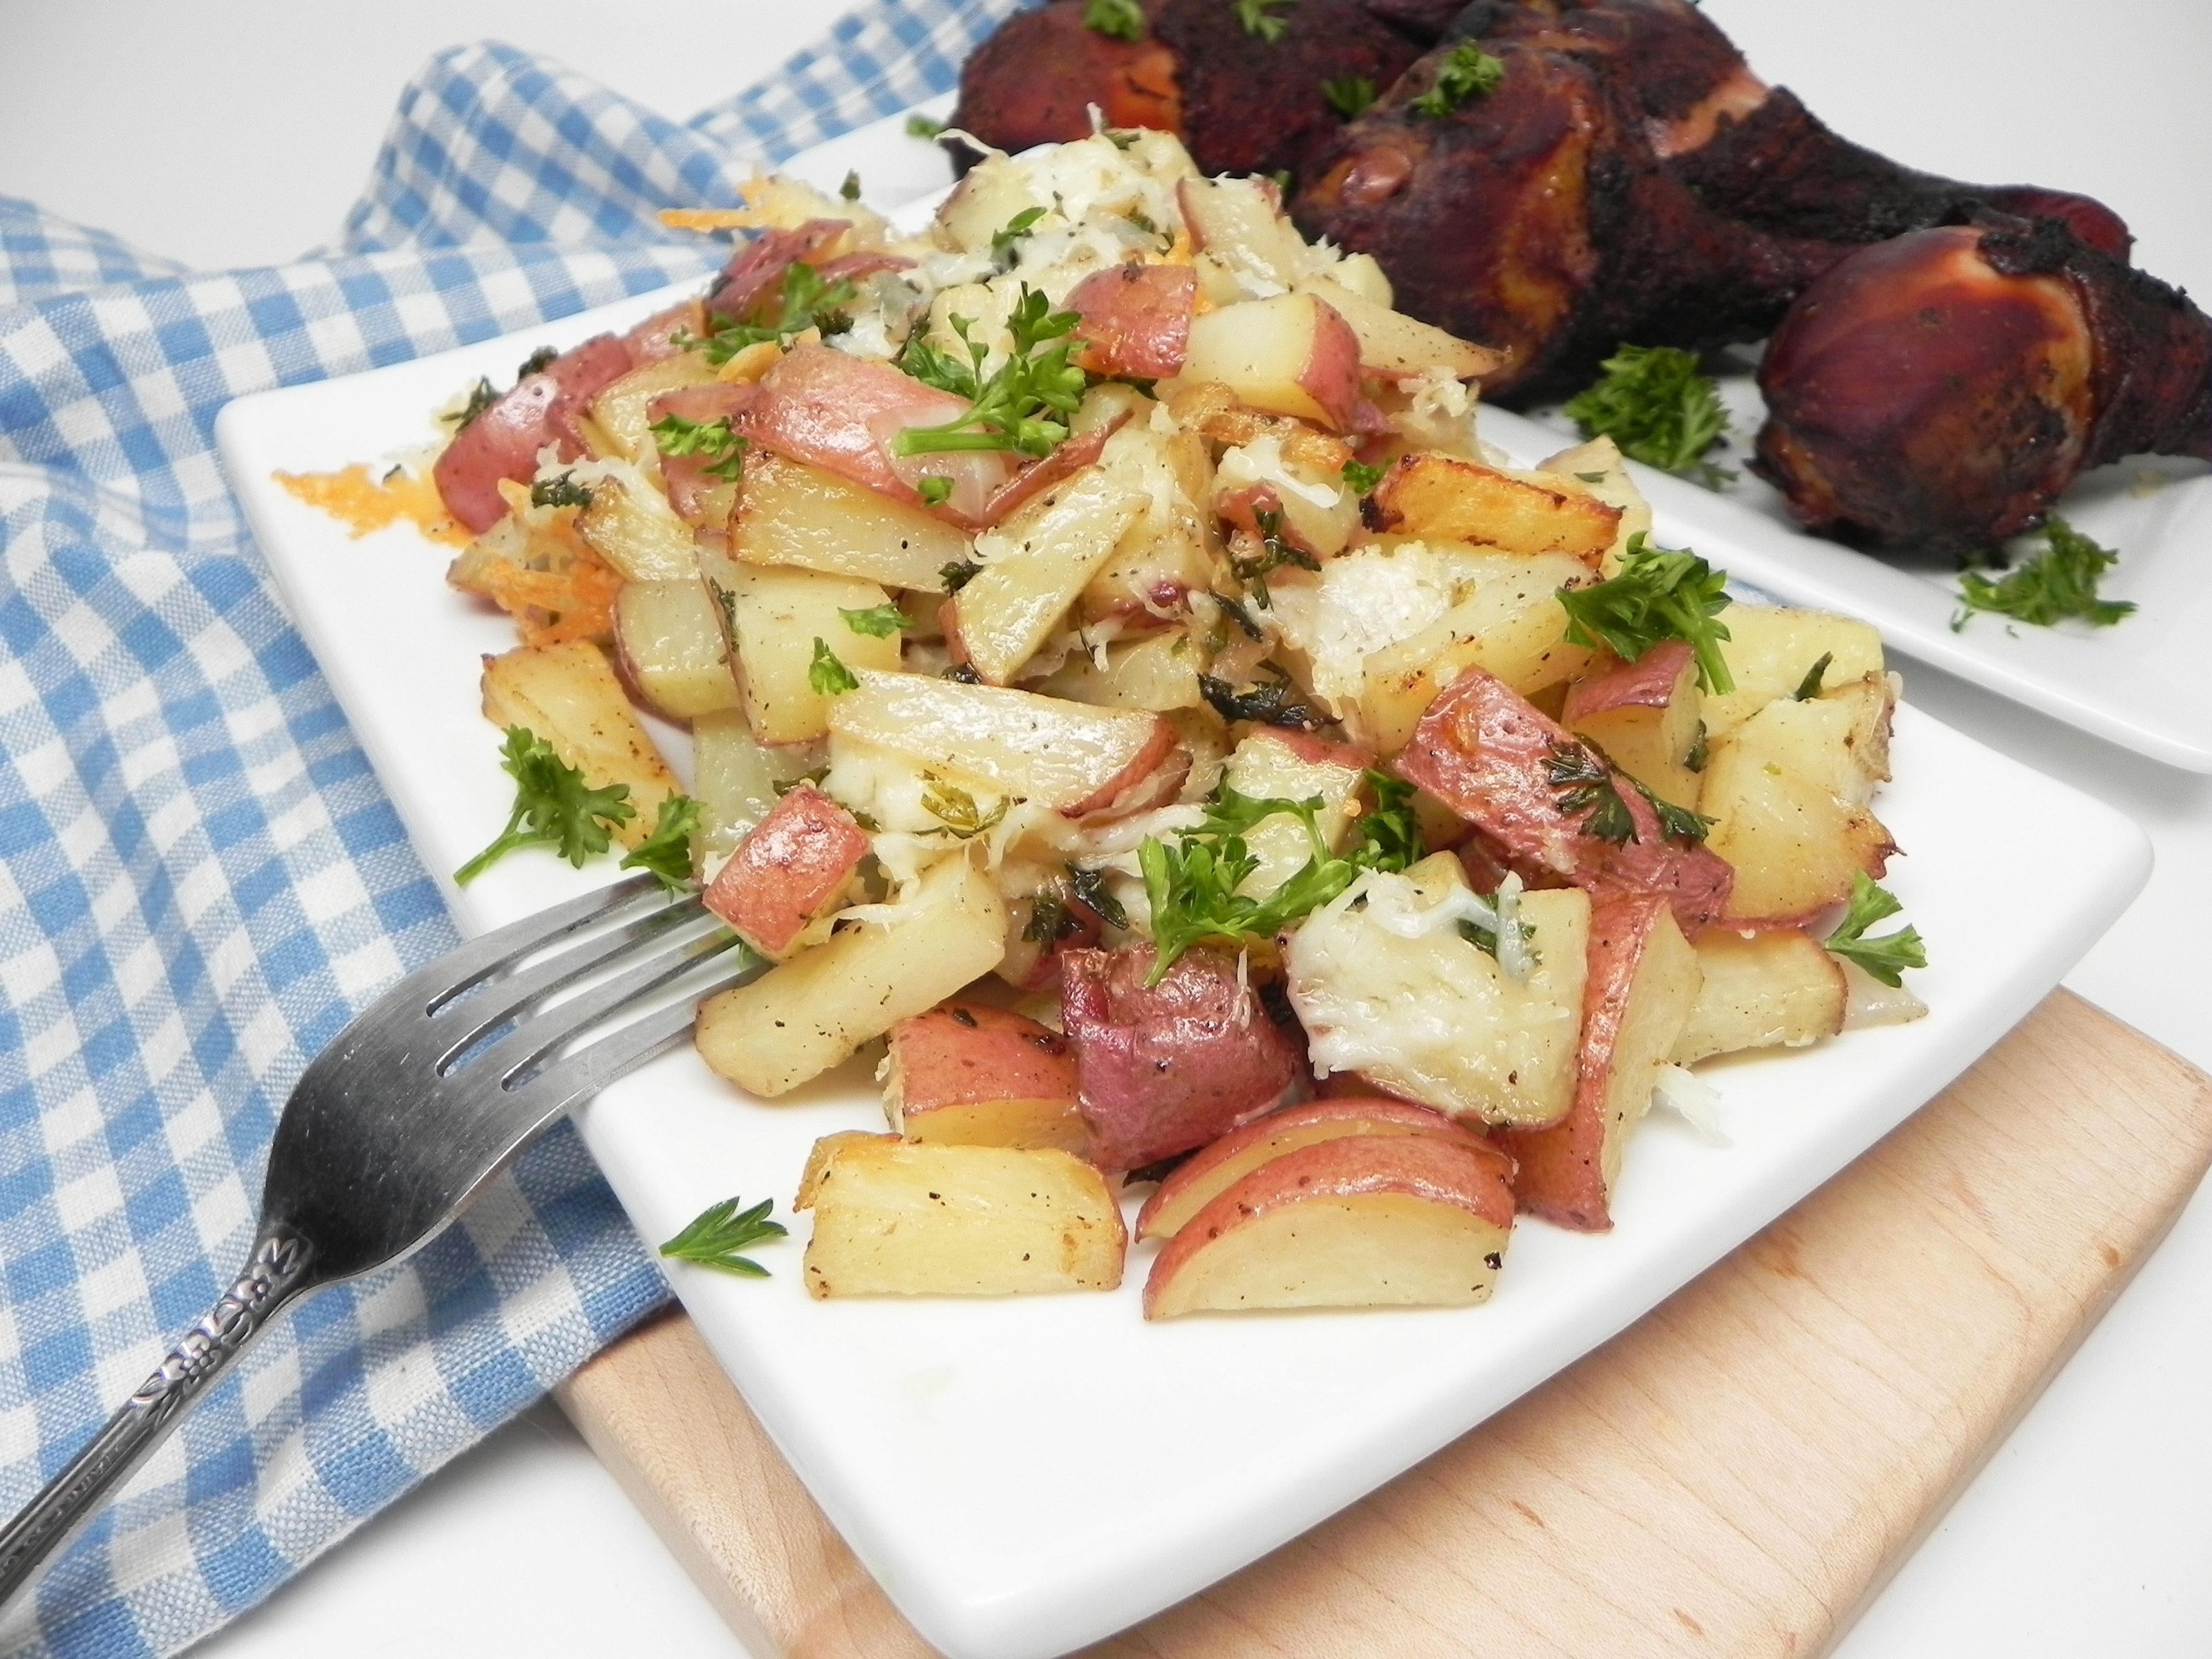 Roasted Red Potatoes with Truffle Oil and Parmesan